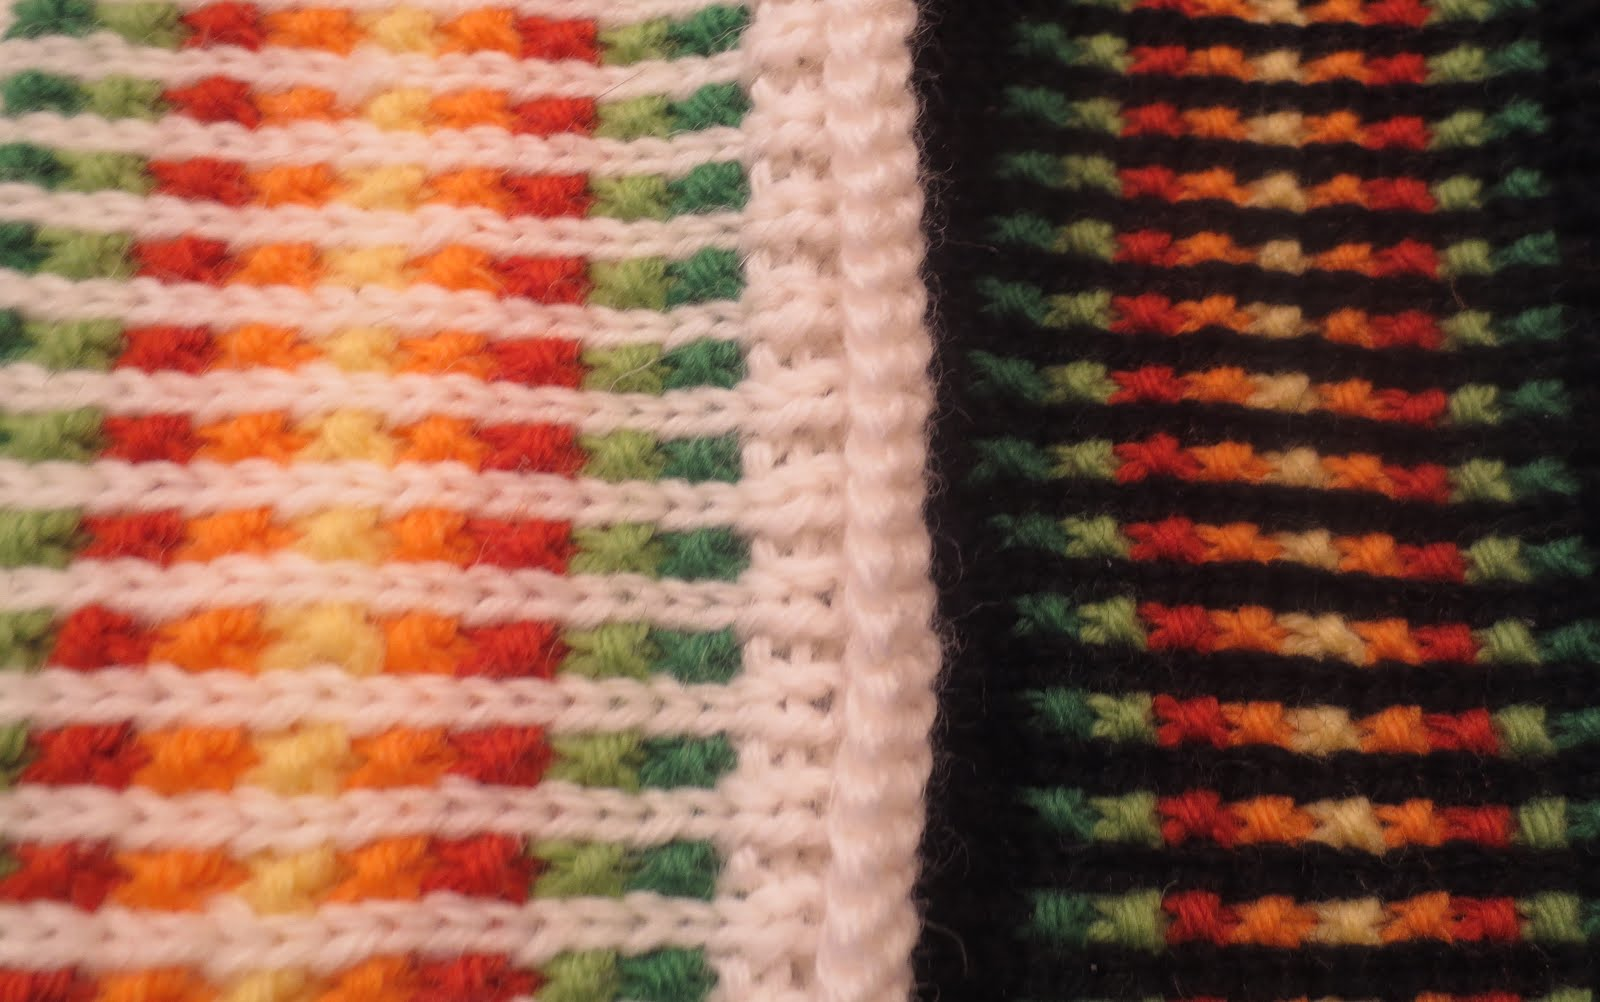 Techknitting corrugated ribbing tricks and tips two examples of 2 row high blipless corrugated worked as described in the text note also the rolled edge evident on the white sample bankloansurffo Choice Image